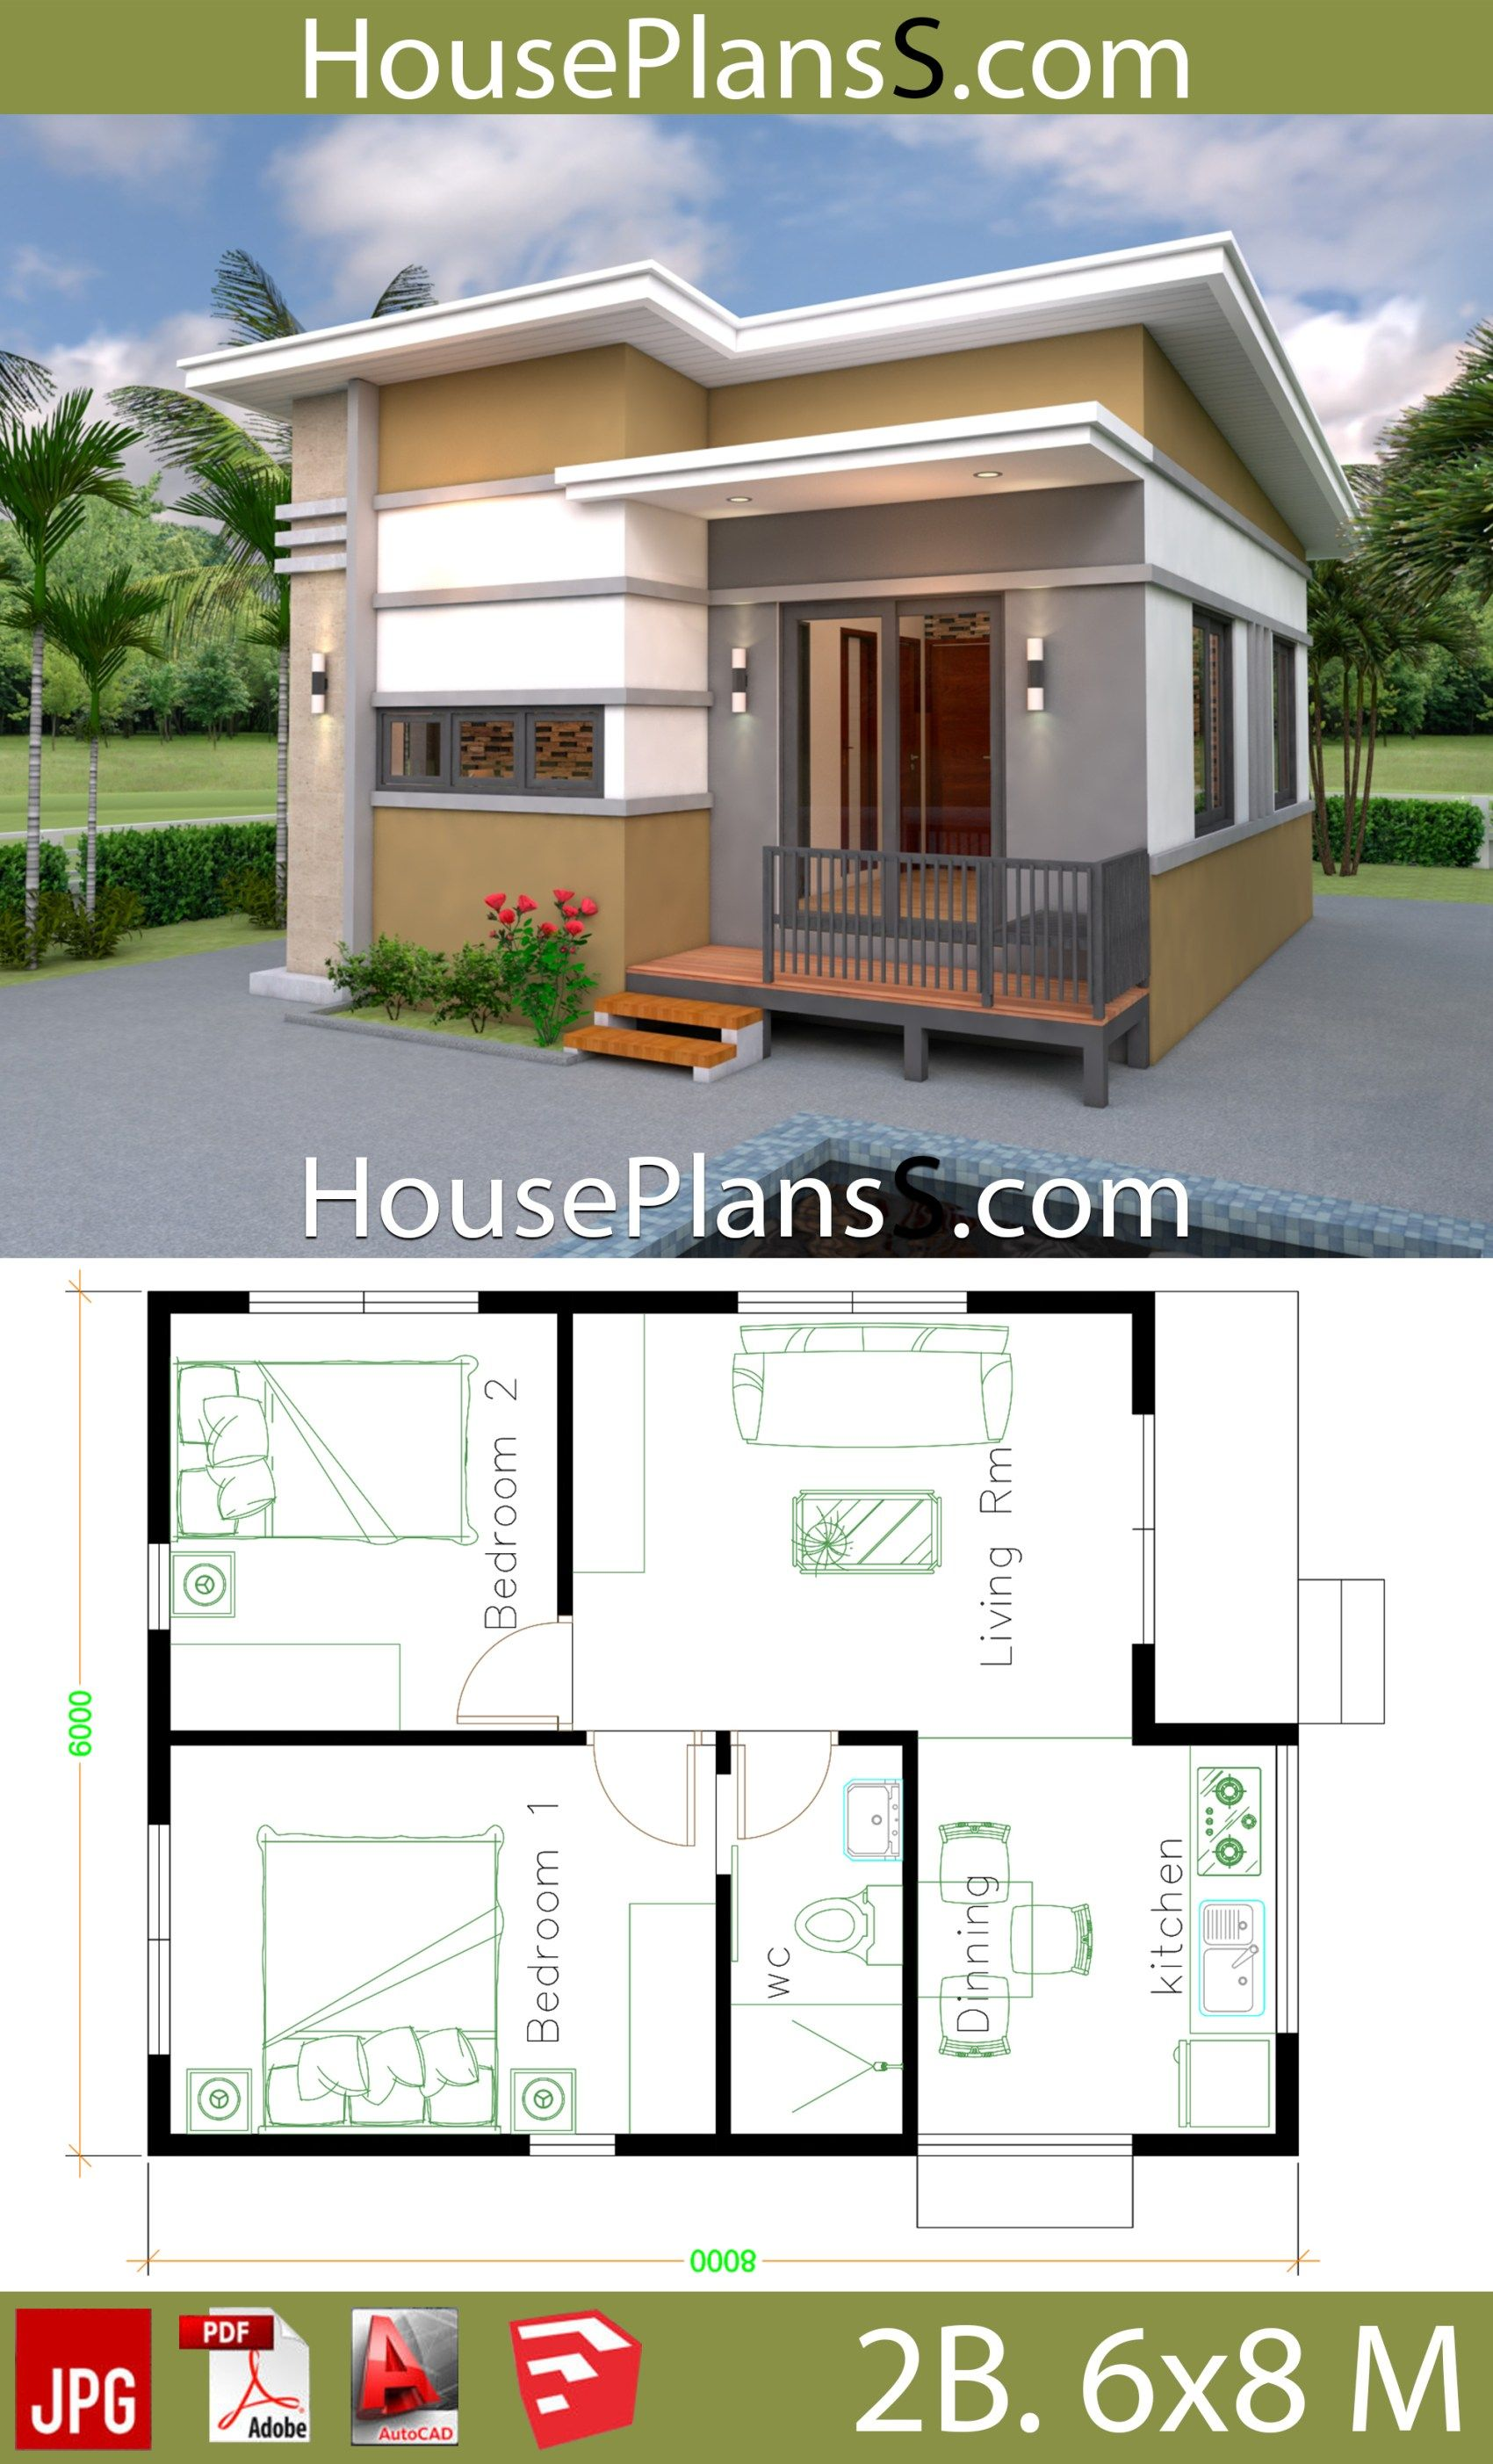 Small House Design Plans 6x8 With 2 Bedrooms Small House Design